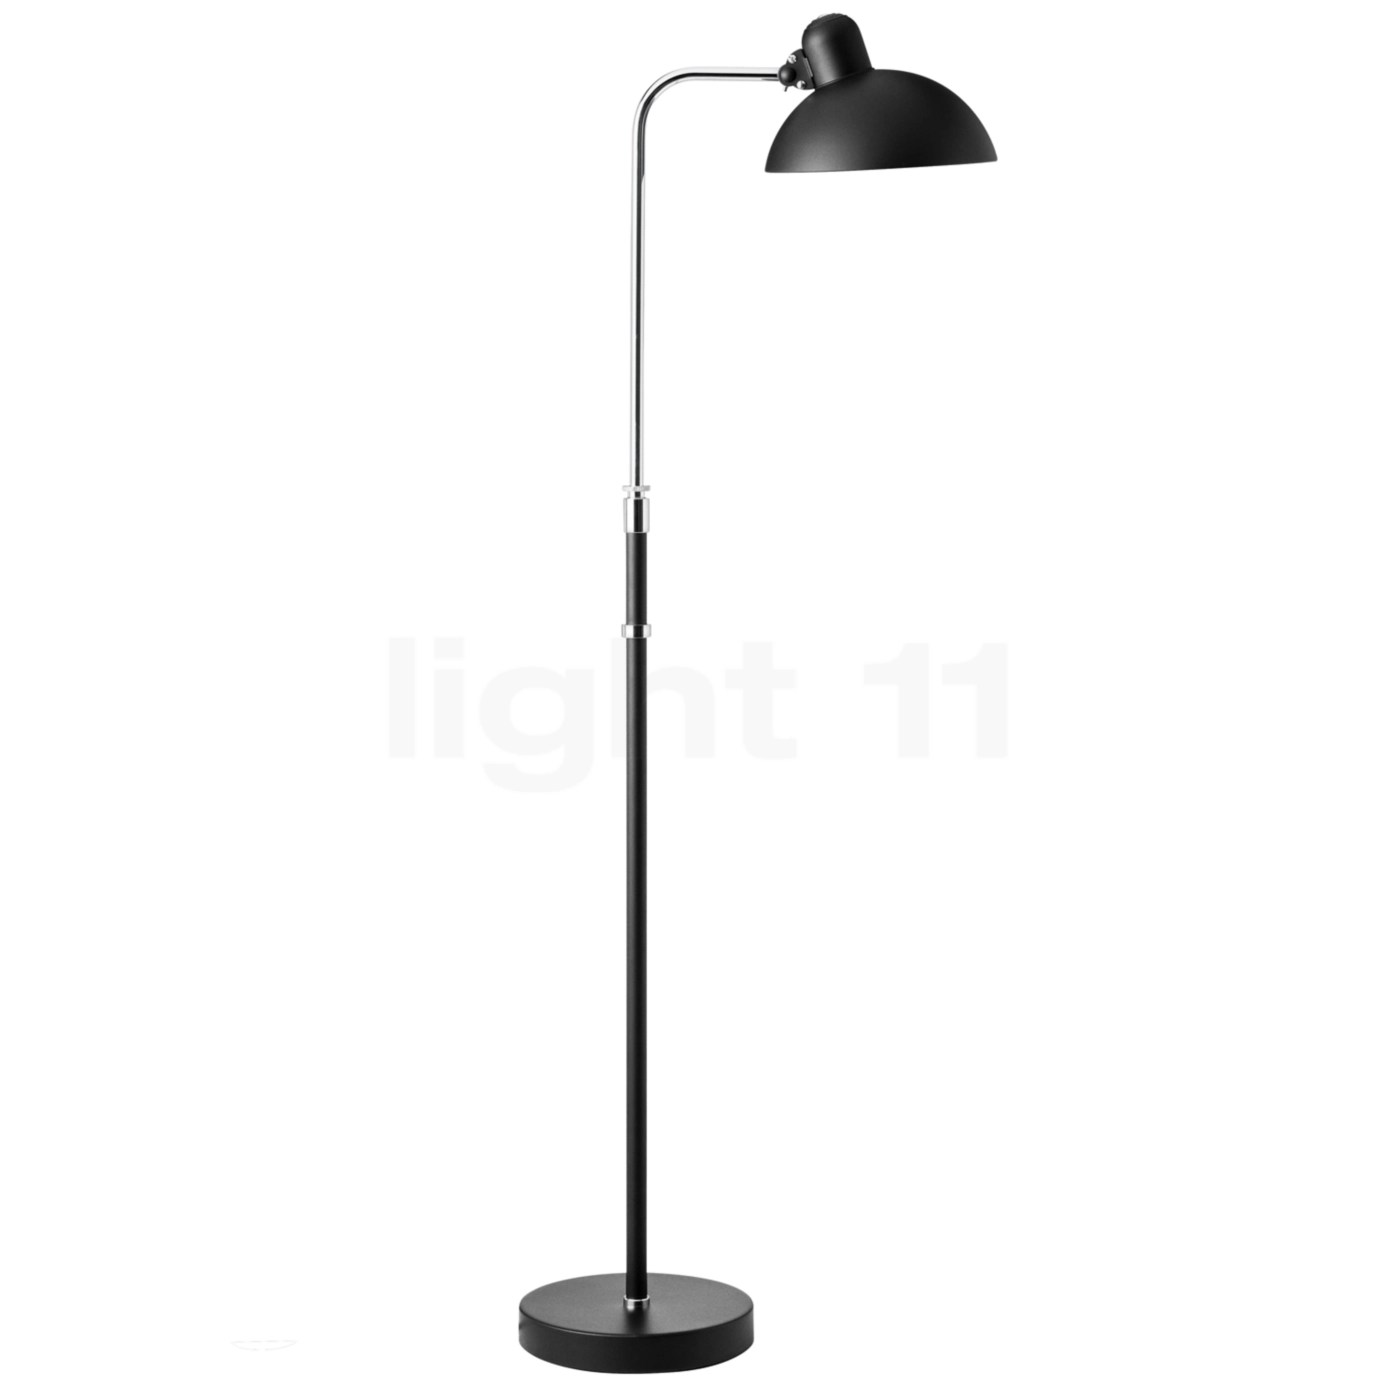 Kaiser Idell Lampe Buy Fritz Hansen Kaiser Idell 6580 F At Light11 Eu